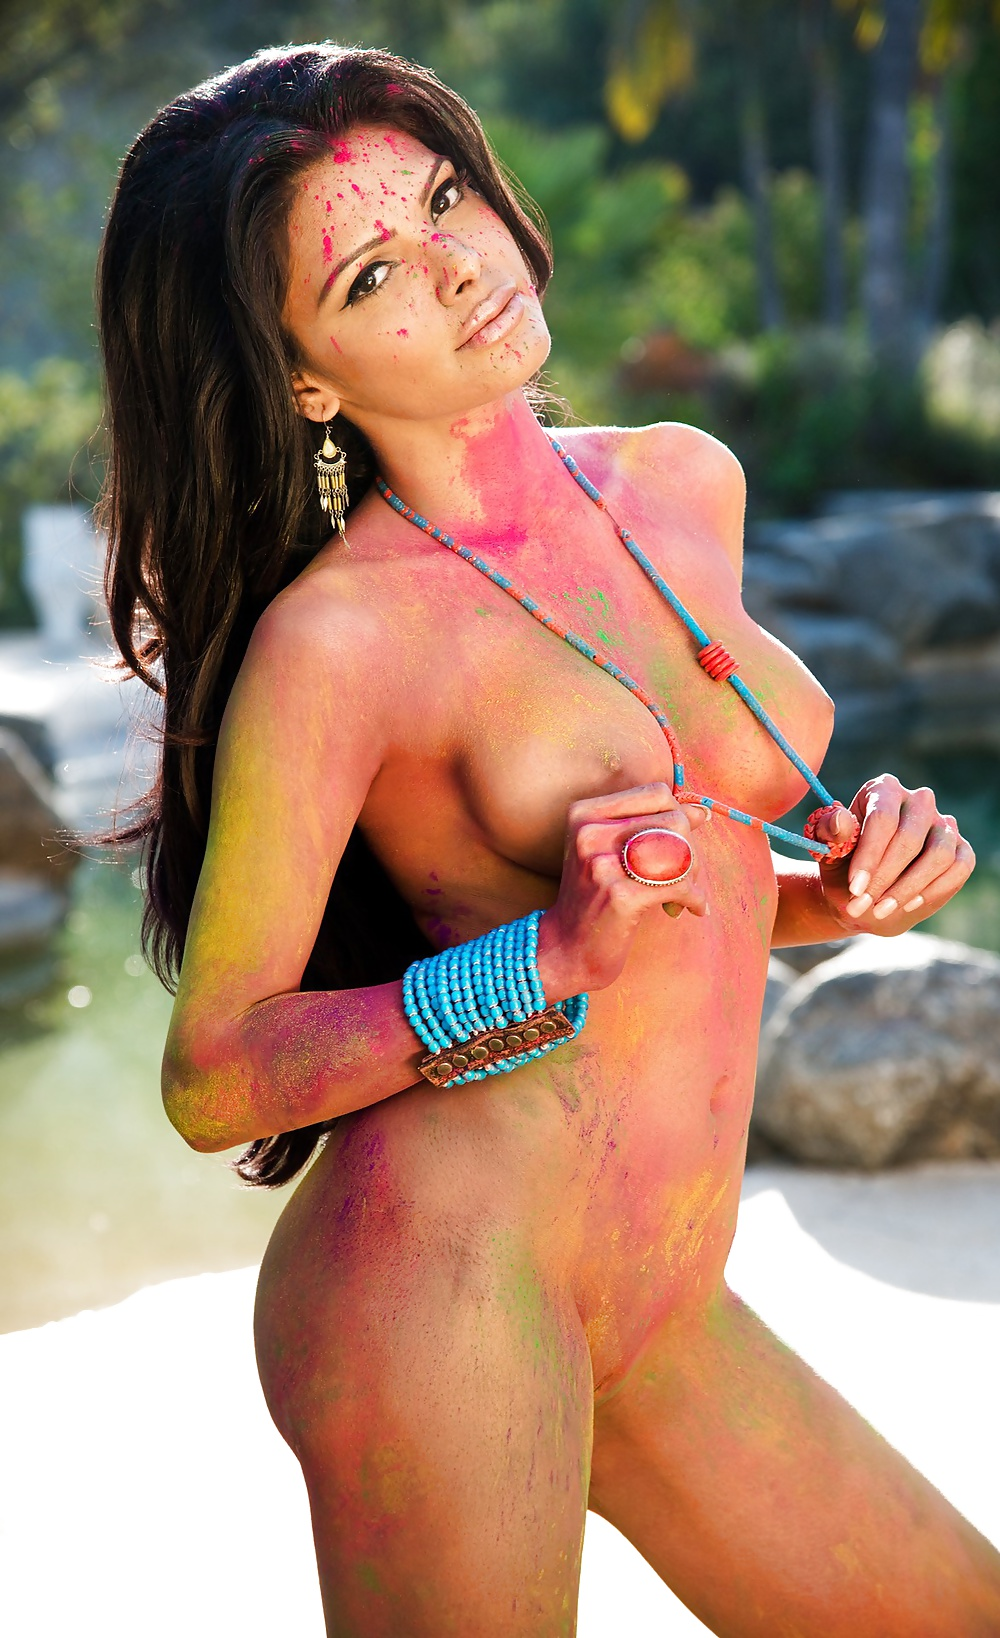 Girl pussy photo at time play holi